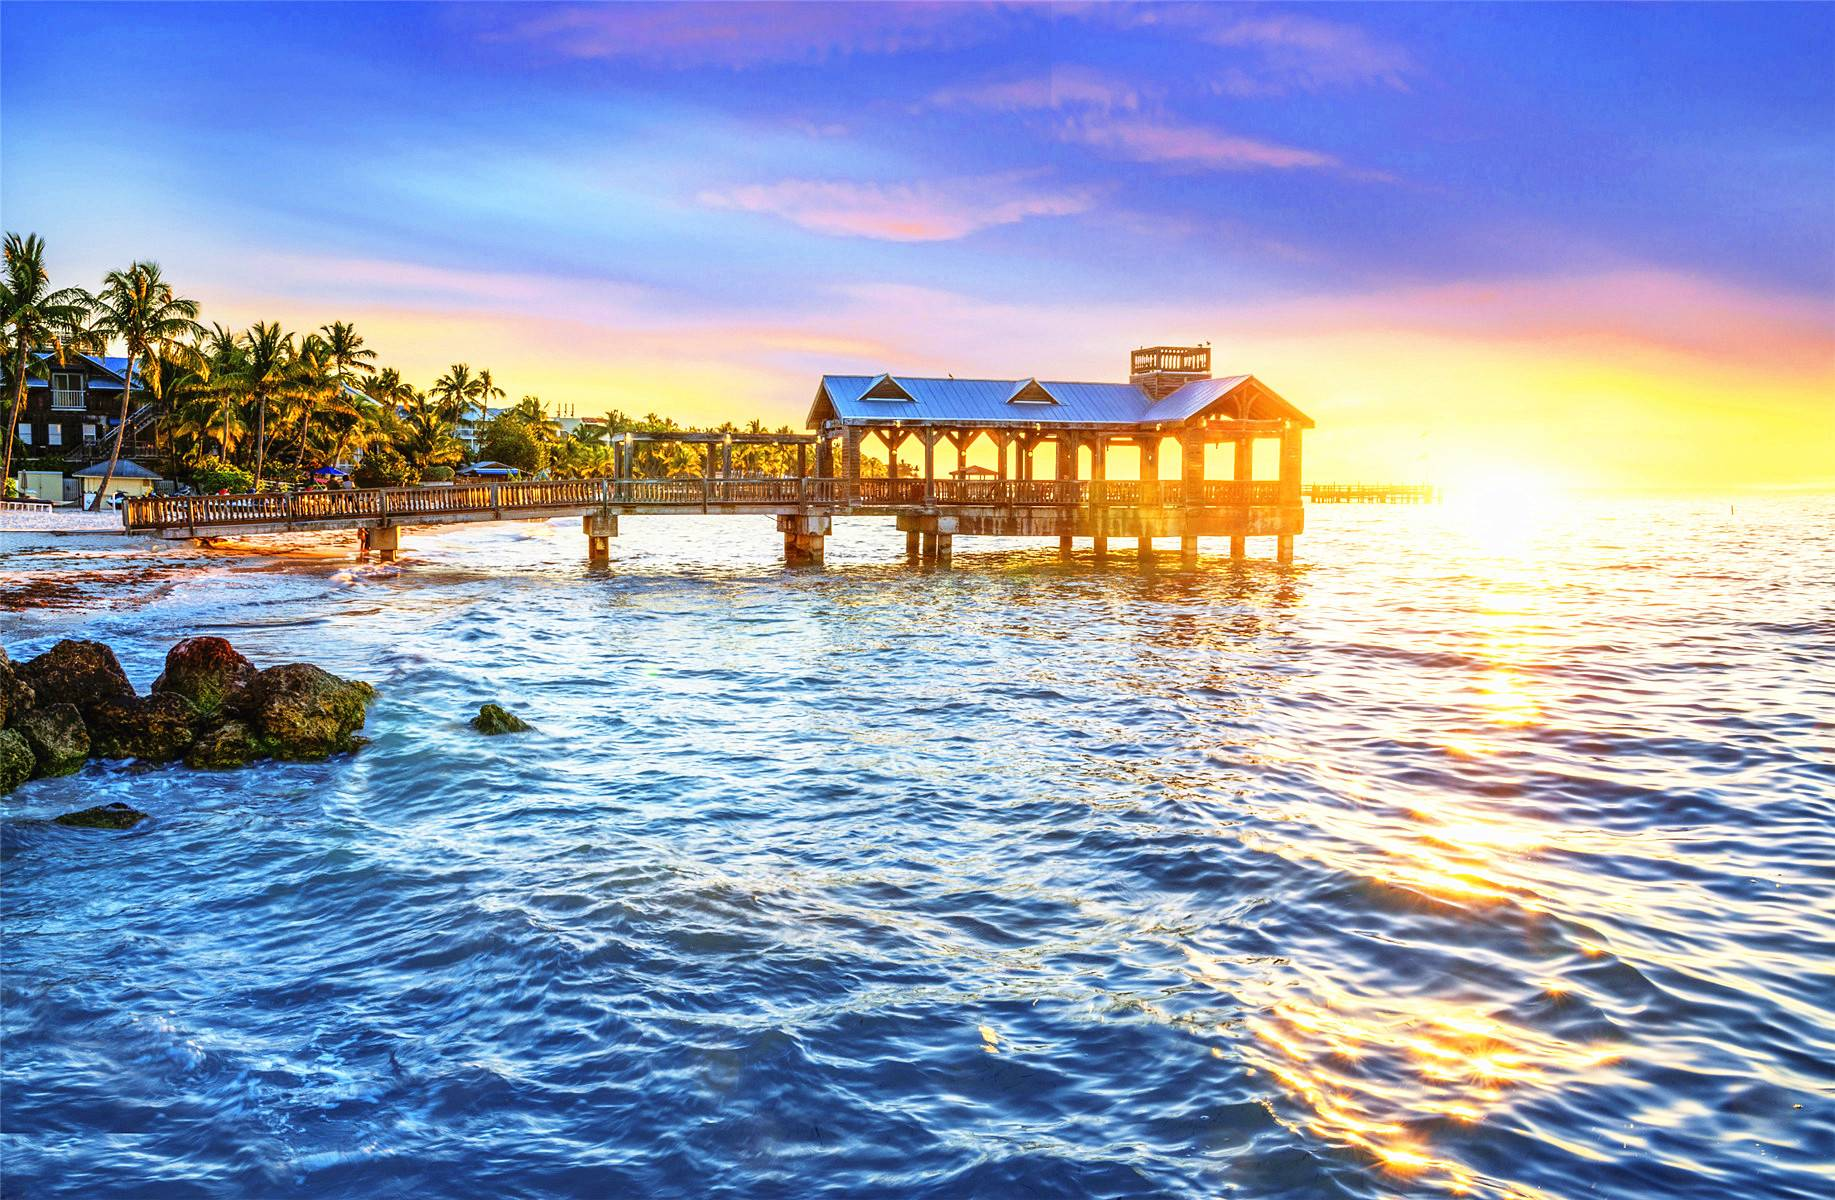 10 Day East Coast And Miami Package Tour From New York 3 Options On Day2 Tours4fun